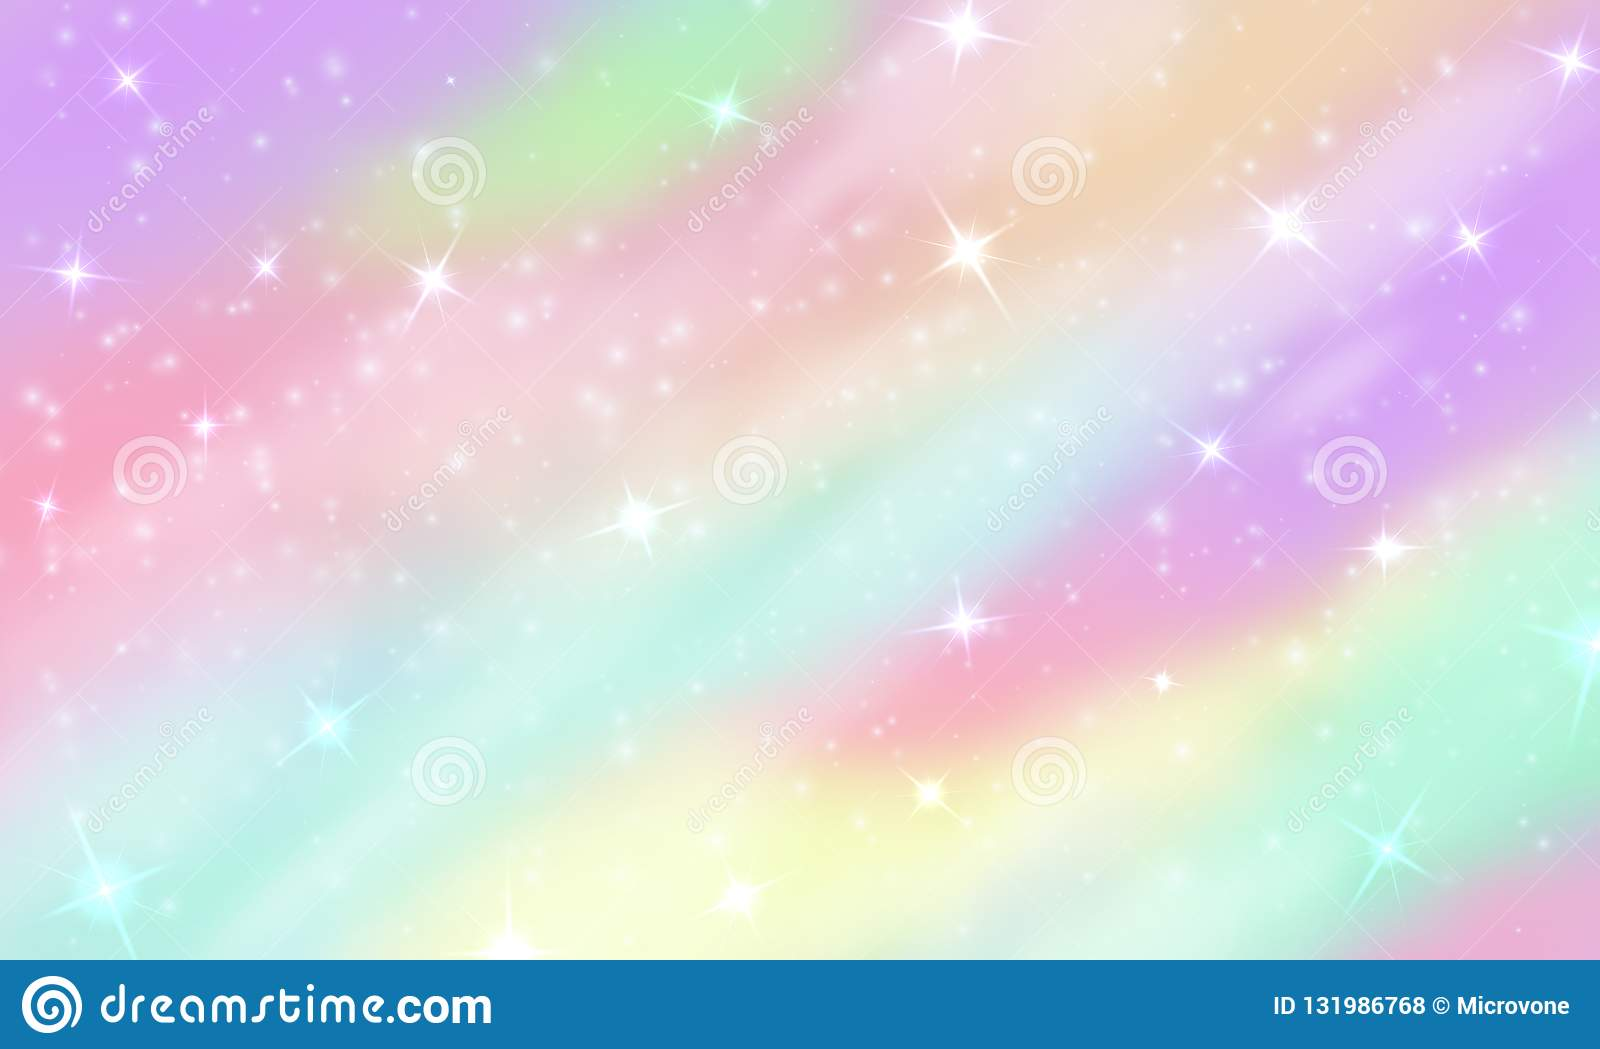 rainbow unicorn background mermaid glittering galaxy pastel colors stars bokeh magic pink holographic vector backdrop 131986768